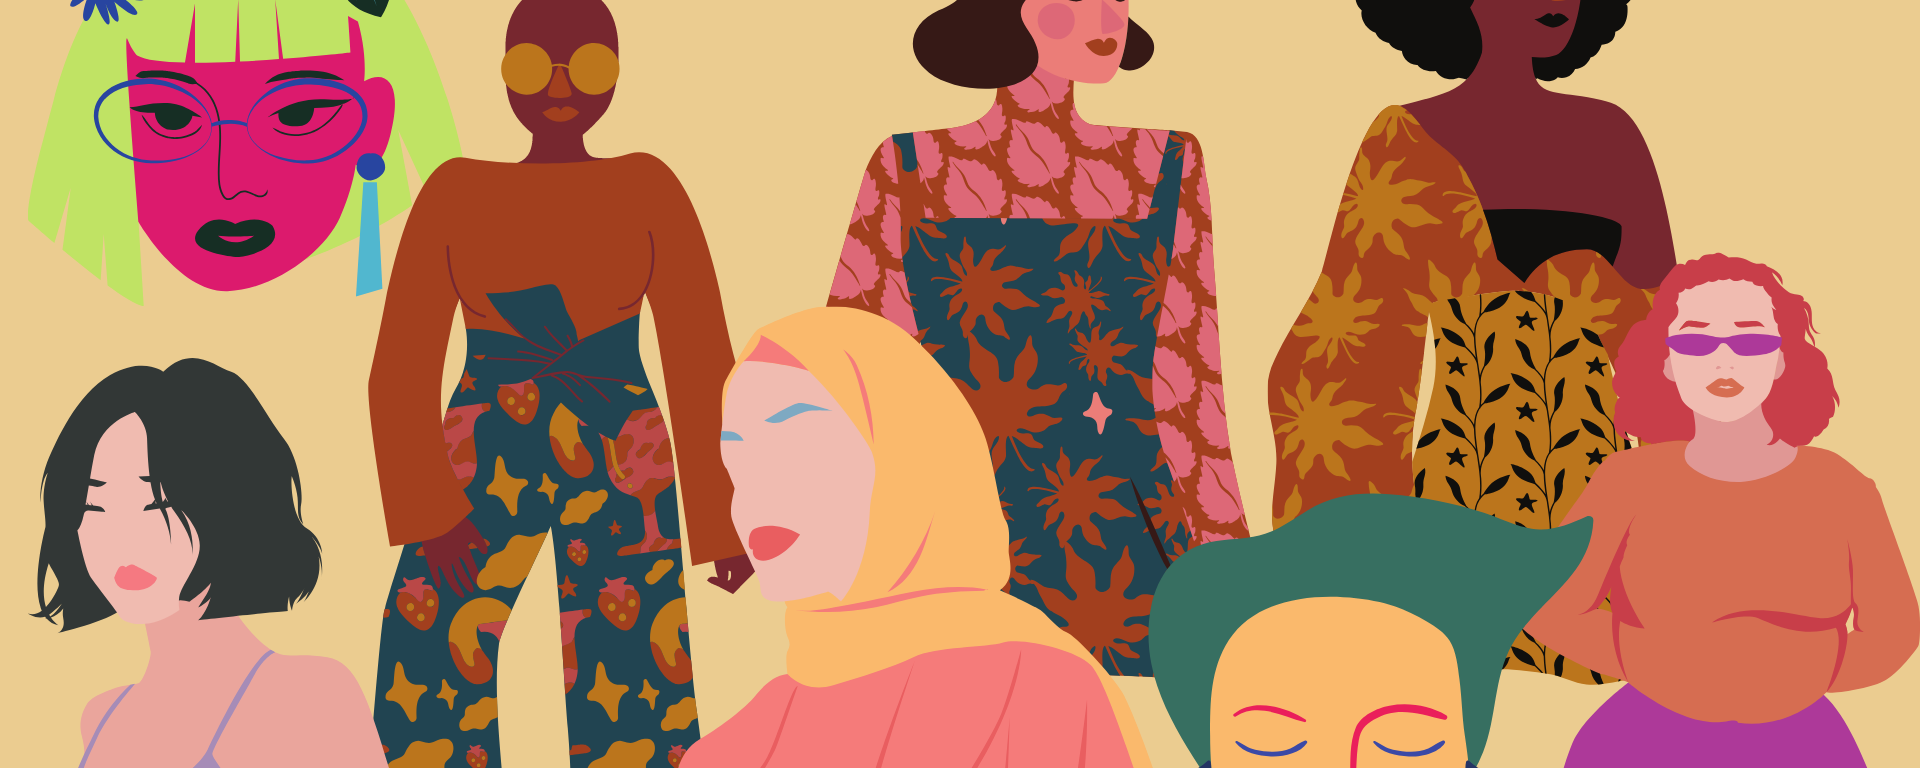 multiple drawn pictures women of shapes and colors stand in front of a beige background